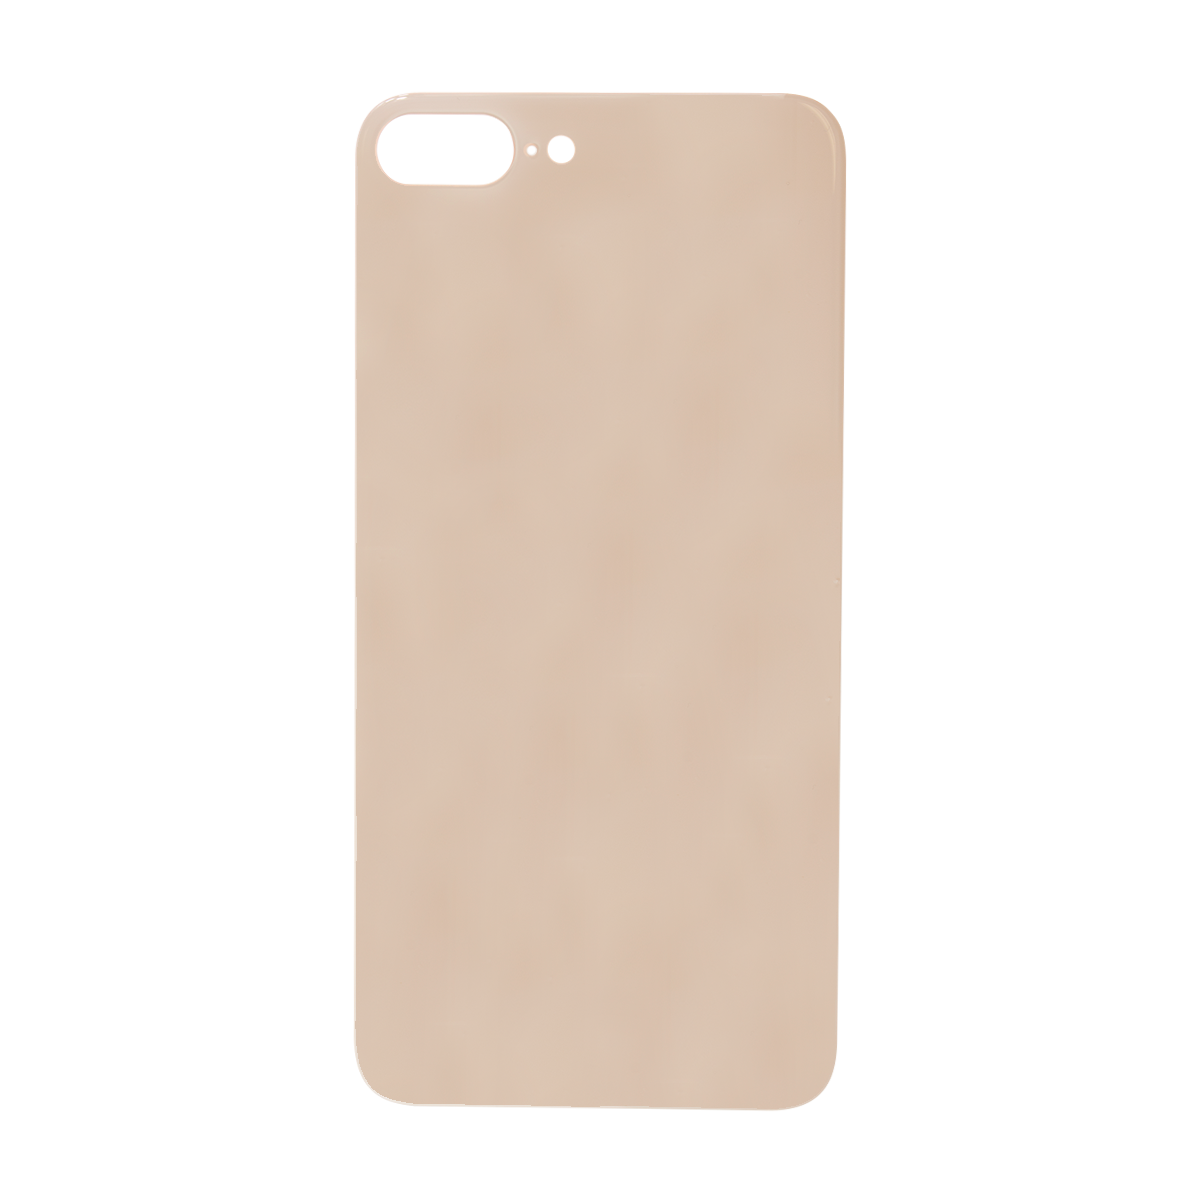 iPhone_8_Plus_Rear_Back_Glass_with_Big_Camera_Hole_Gold_SBDOTGUBS2L6.png